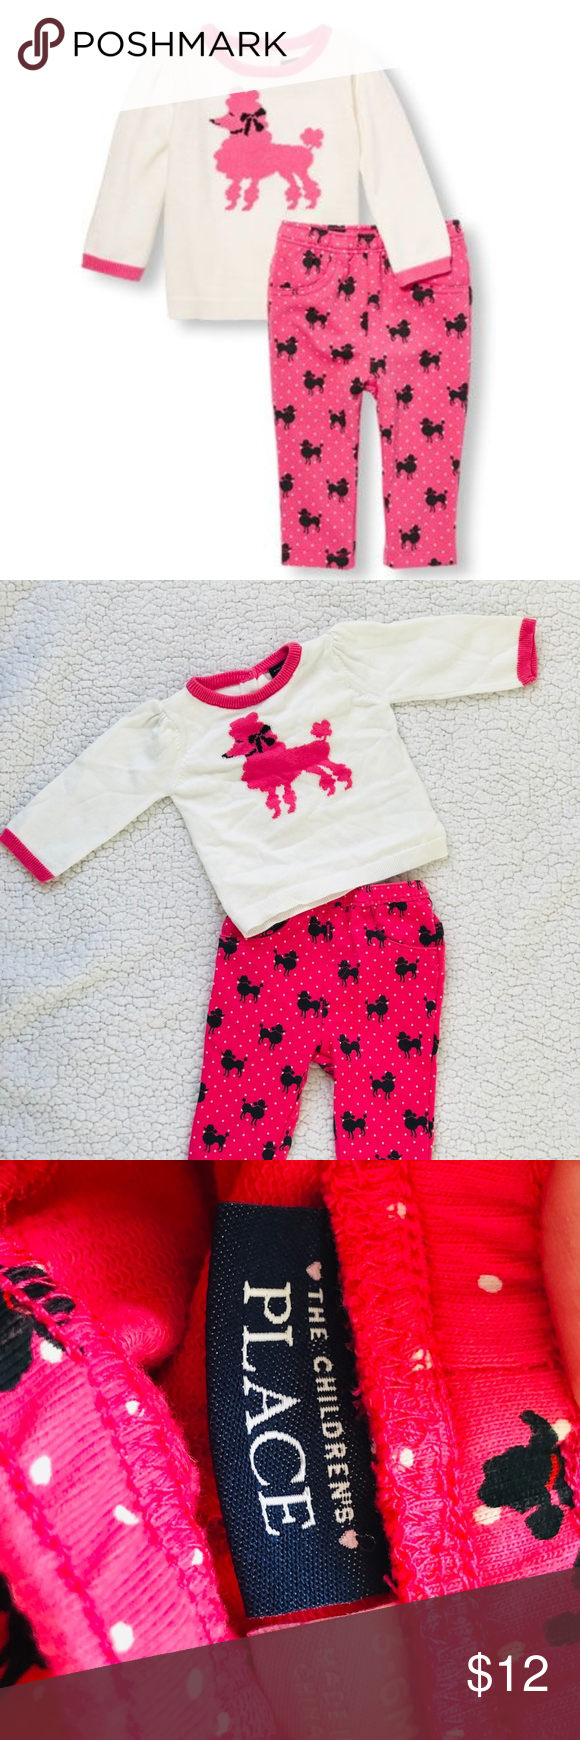 The Childrens Place Baby Girls Poodle Legging Set